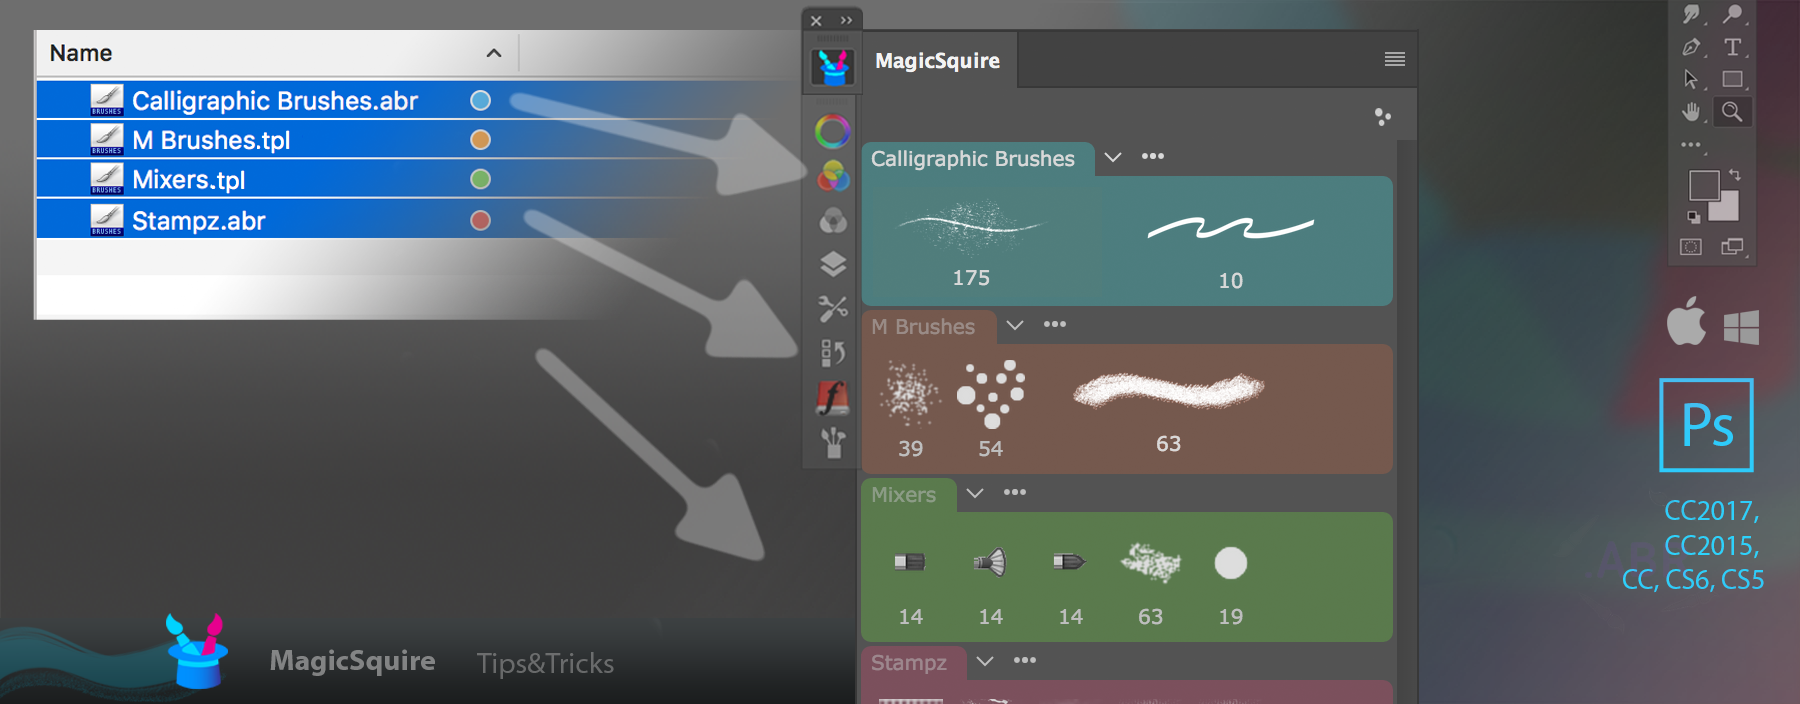 MagicSquire: load brush files into groups